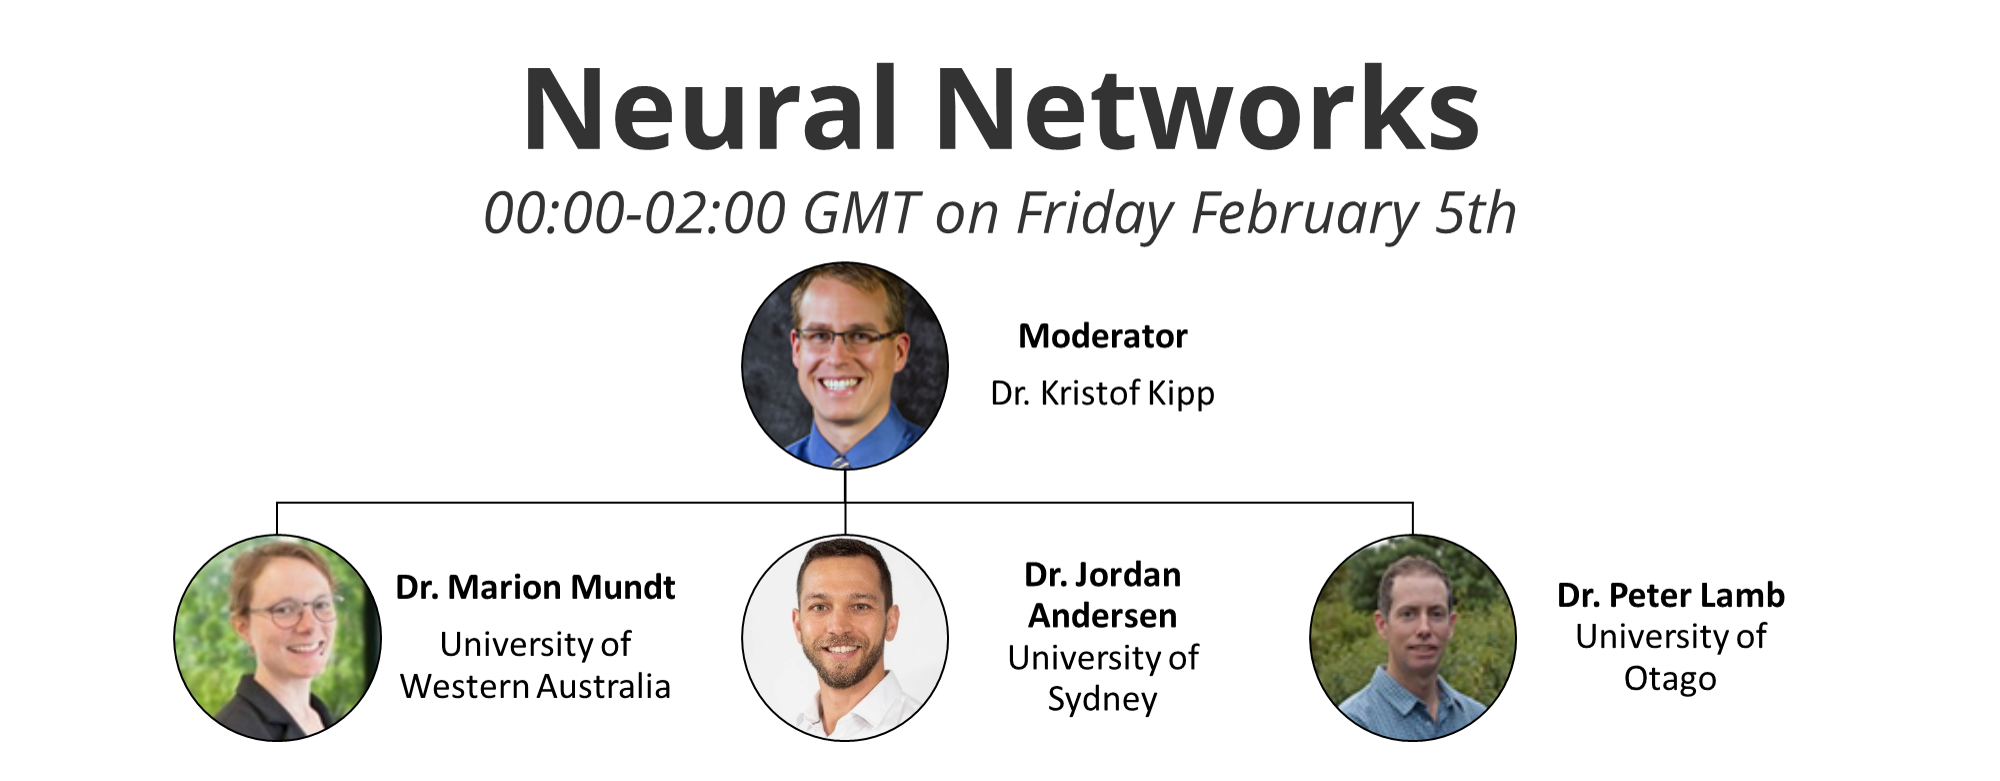 Neural Networks. 00:00-02:00 GMT on Thursday- Friday February 4-5th. Moderator: Dr. Kristof Kipp. Speakers: Dr. Marion Mundt University of Western Australia, Dr. Jordan Andersen University of Sydney, Dr. Peter Lamb University of Otago.